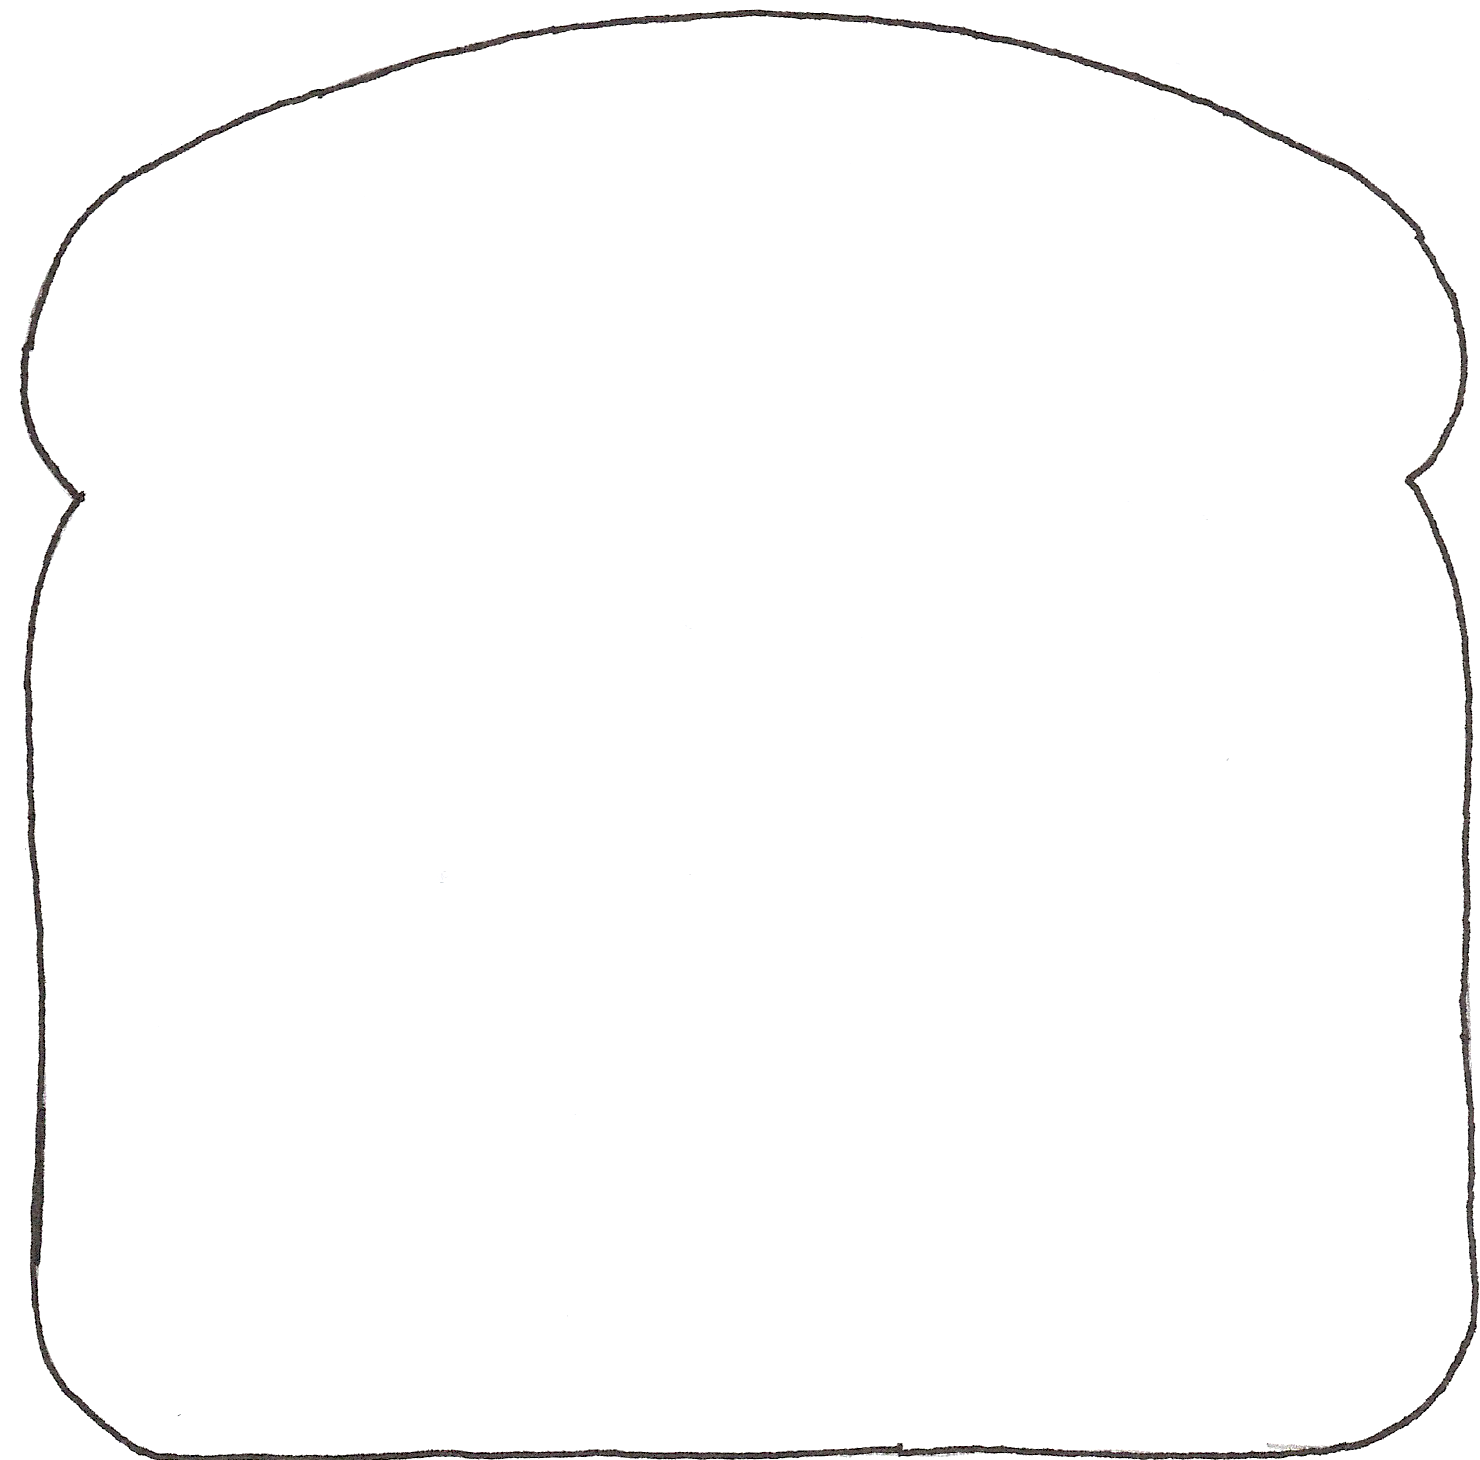 loaf of bread slice of bread free photos loaf of bread slice of bread free photos